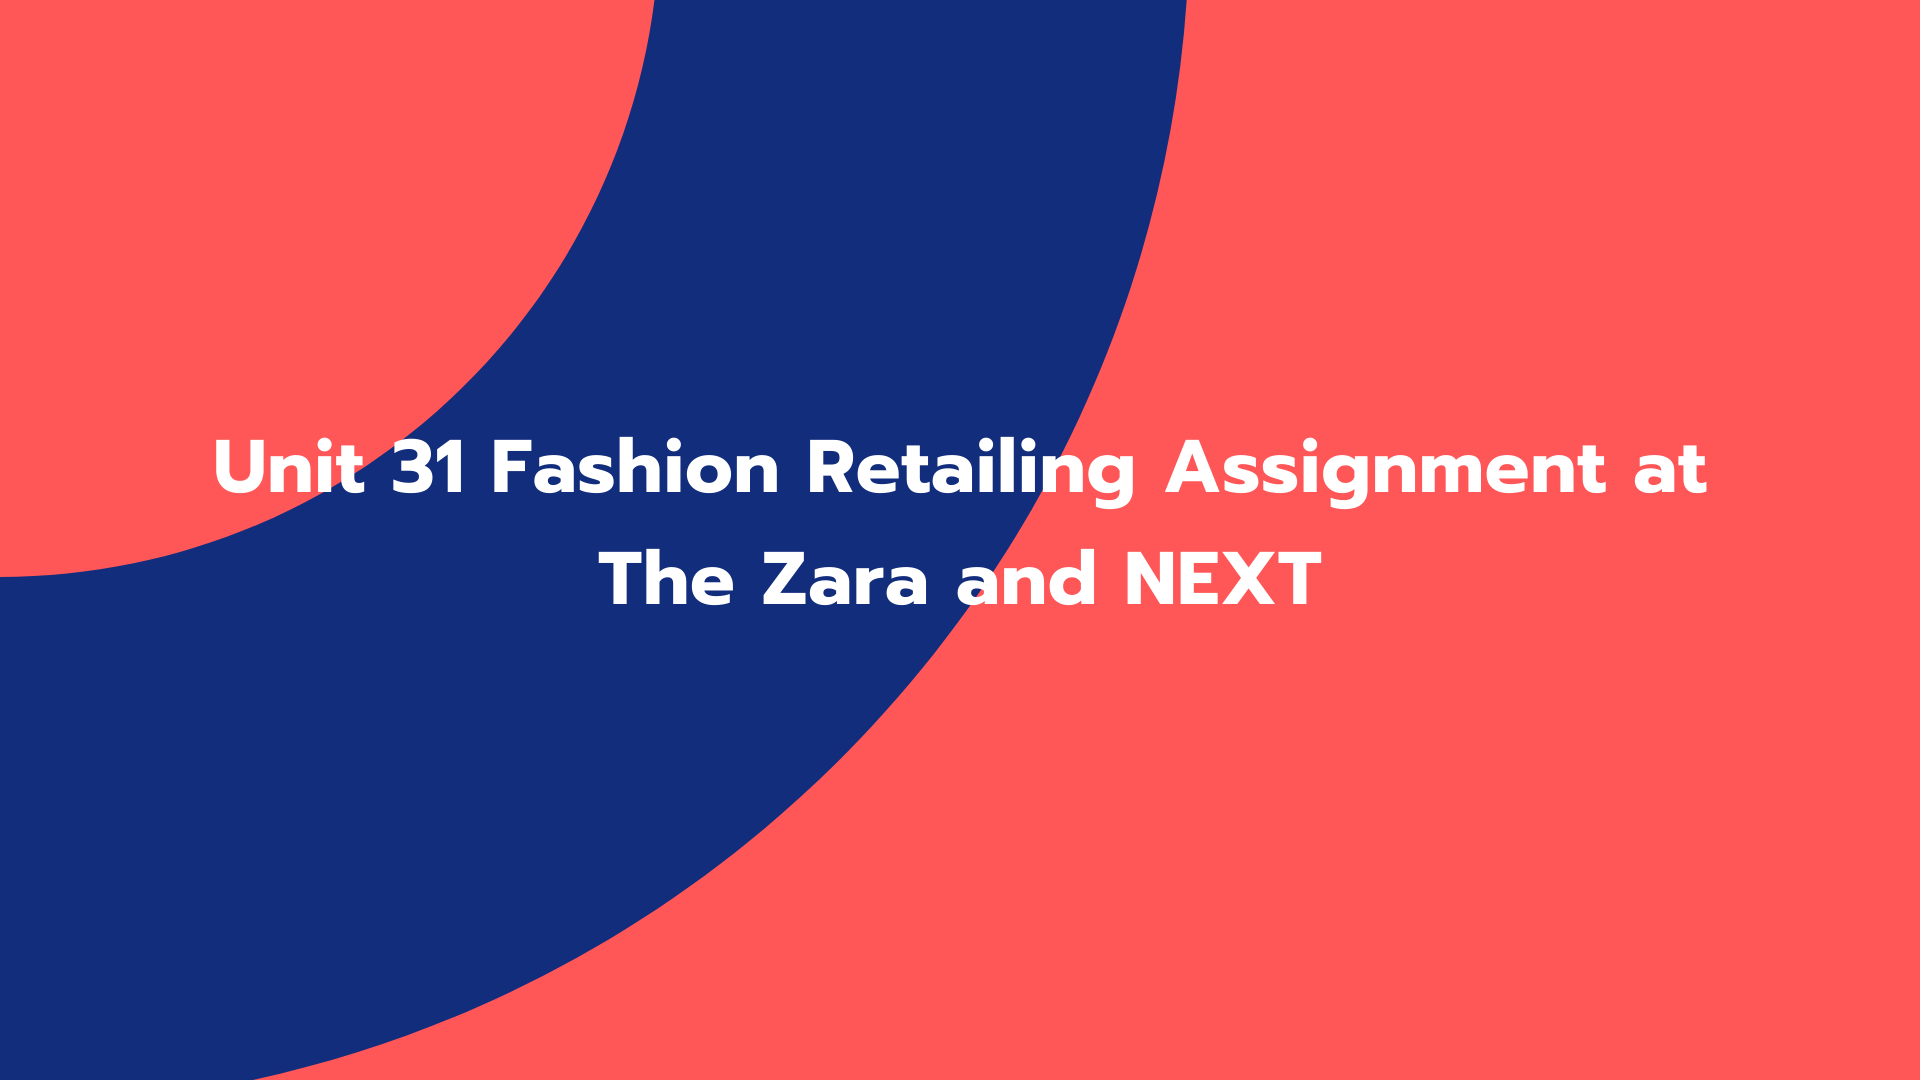 Unit 31 Fashion Retailing Assignment at The Zara and NEXT